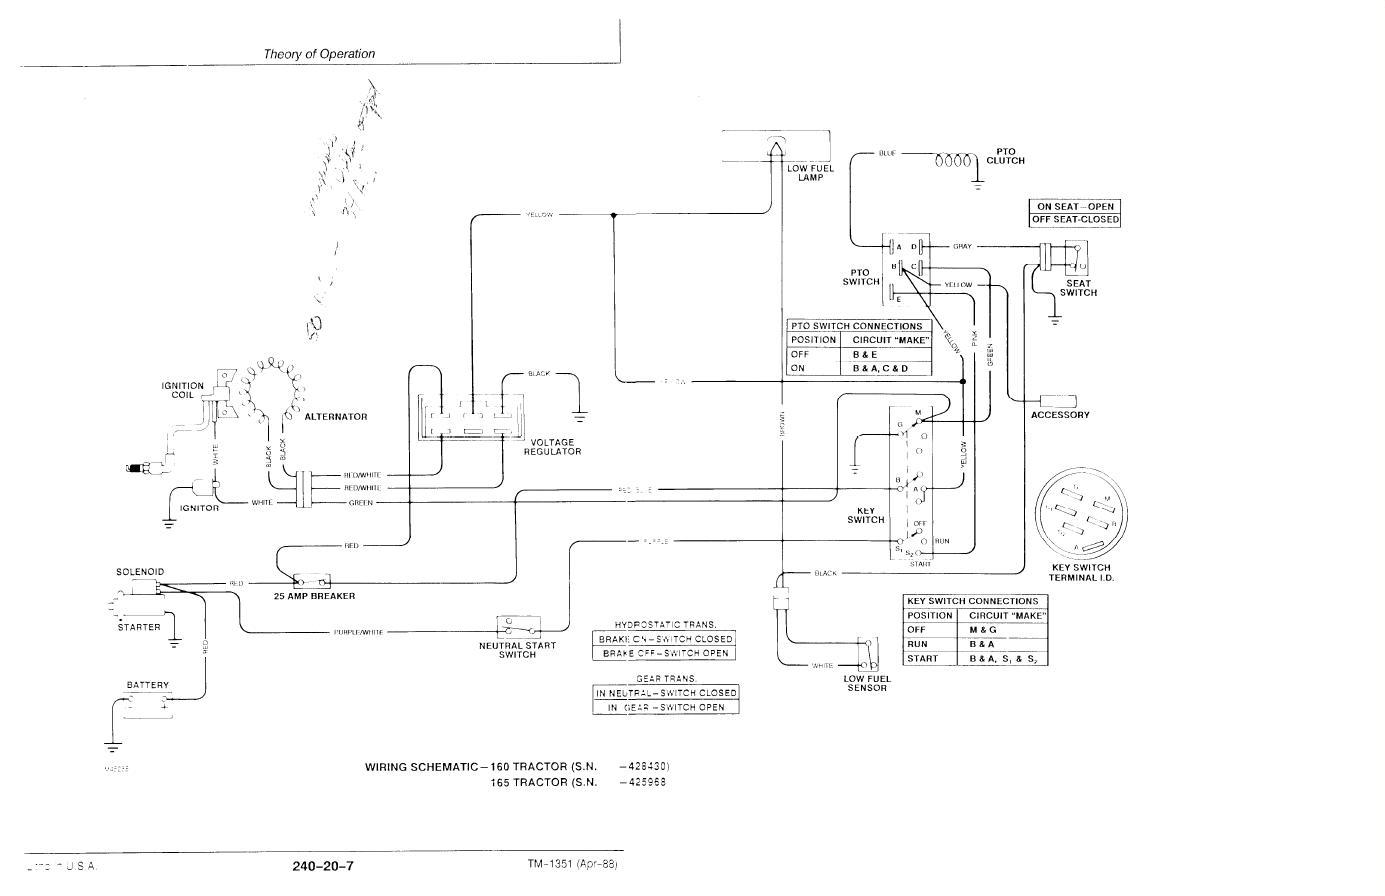 wiring diagram for john deere l130 the wiring diagram john deere model 318 wiring diagram schematics and wiring diagrams wiring diagram